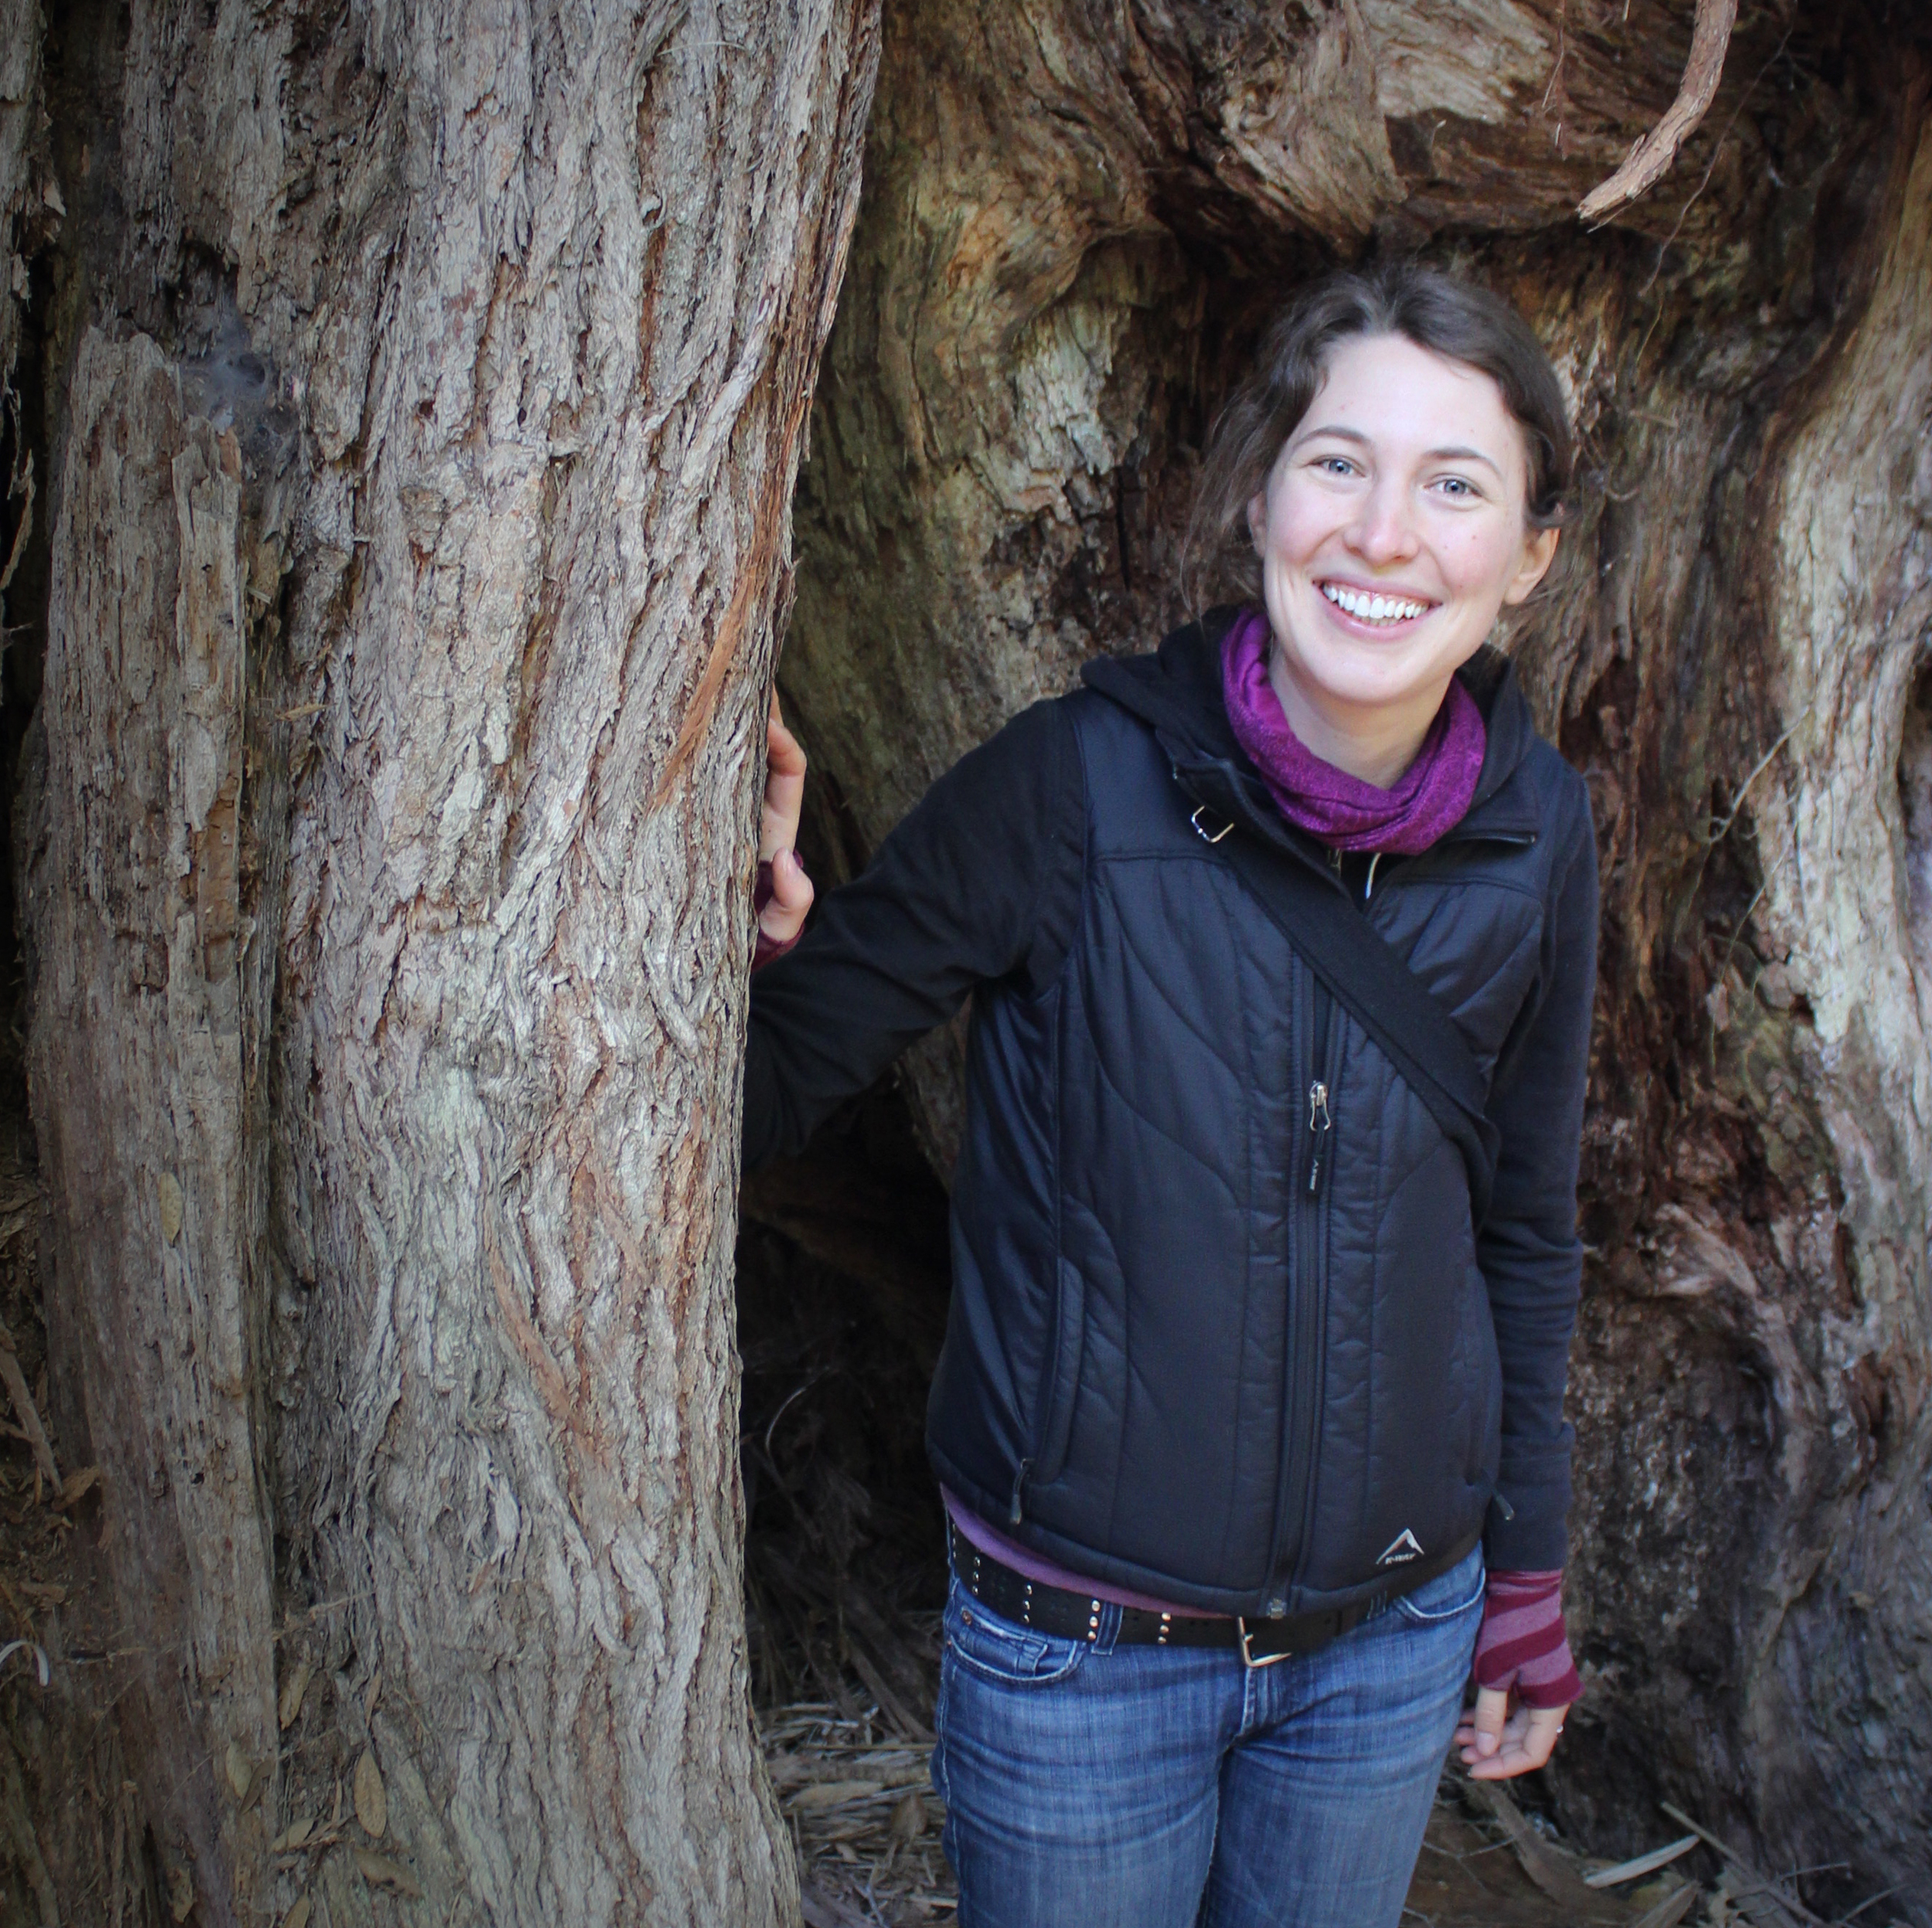 Exploring a great Rata tree in New Zealand